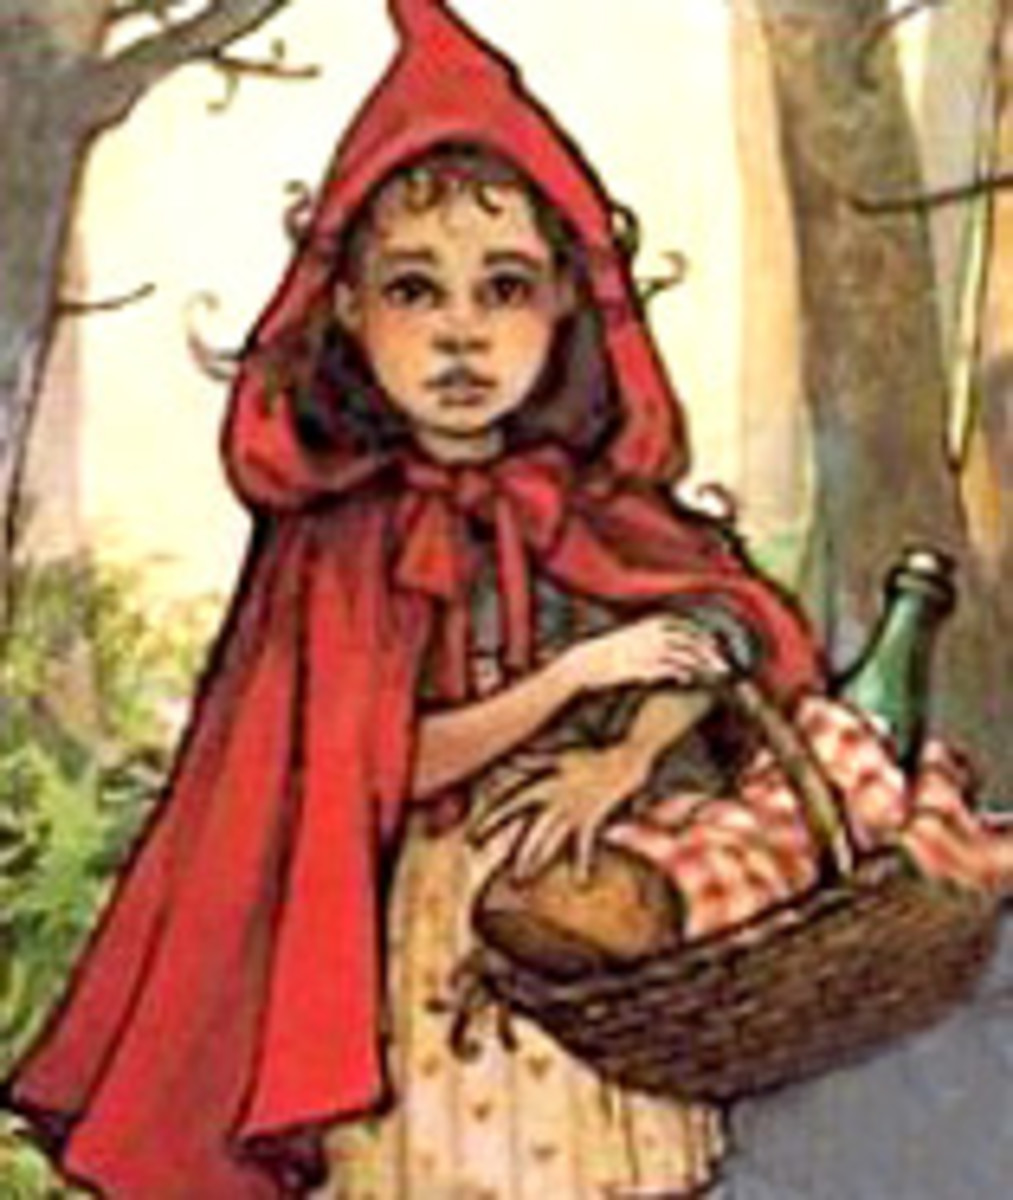 Red Riding Hood bringing Grandma basket of snacks and bottle of wine